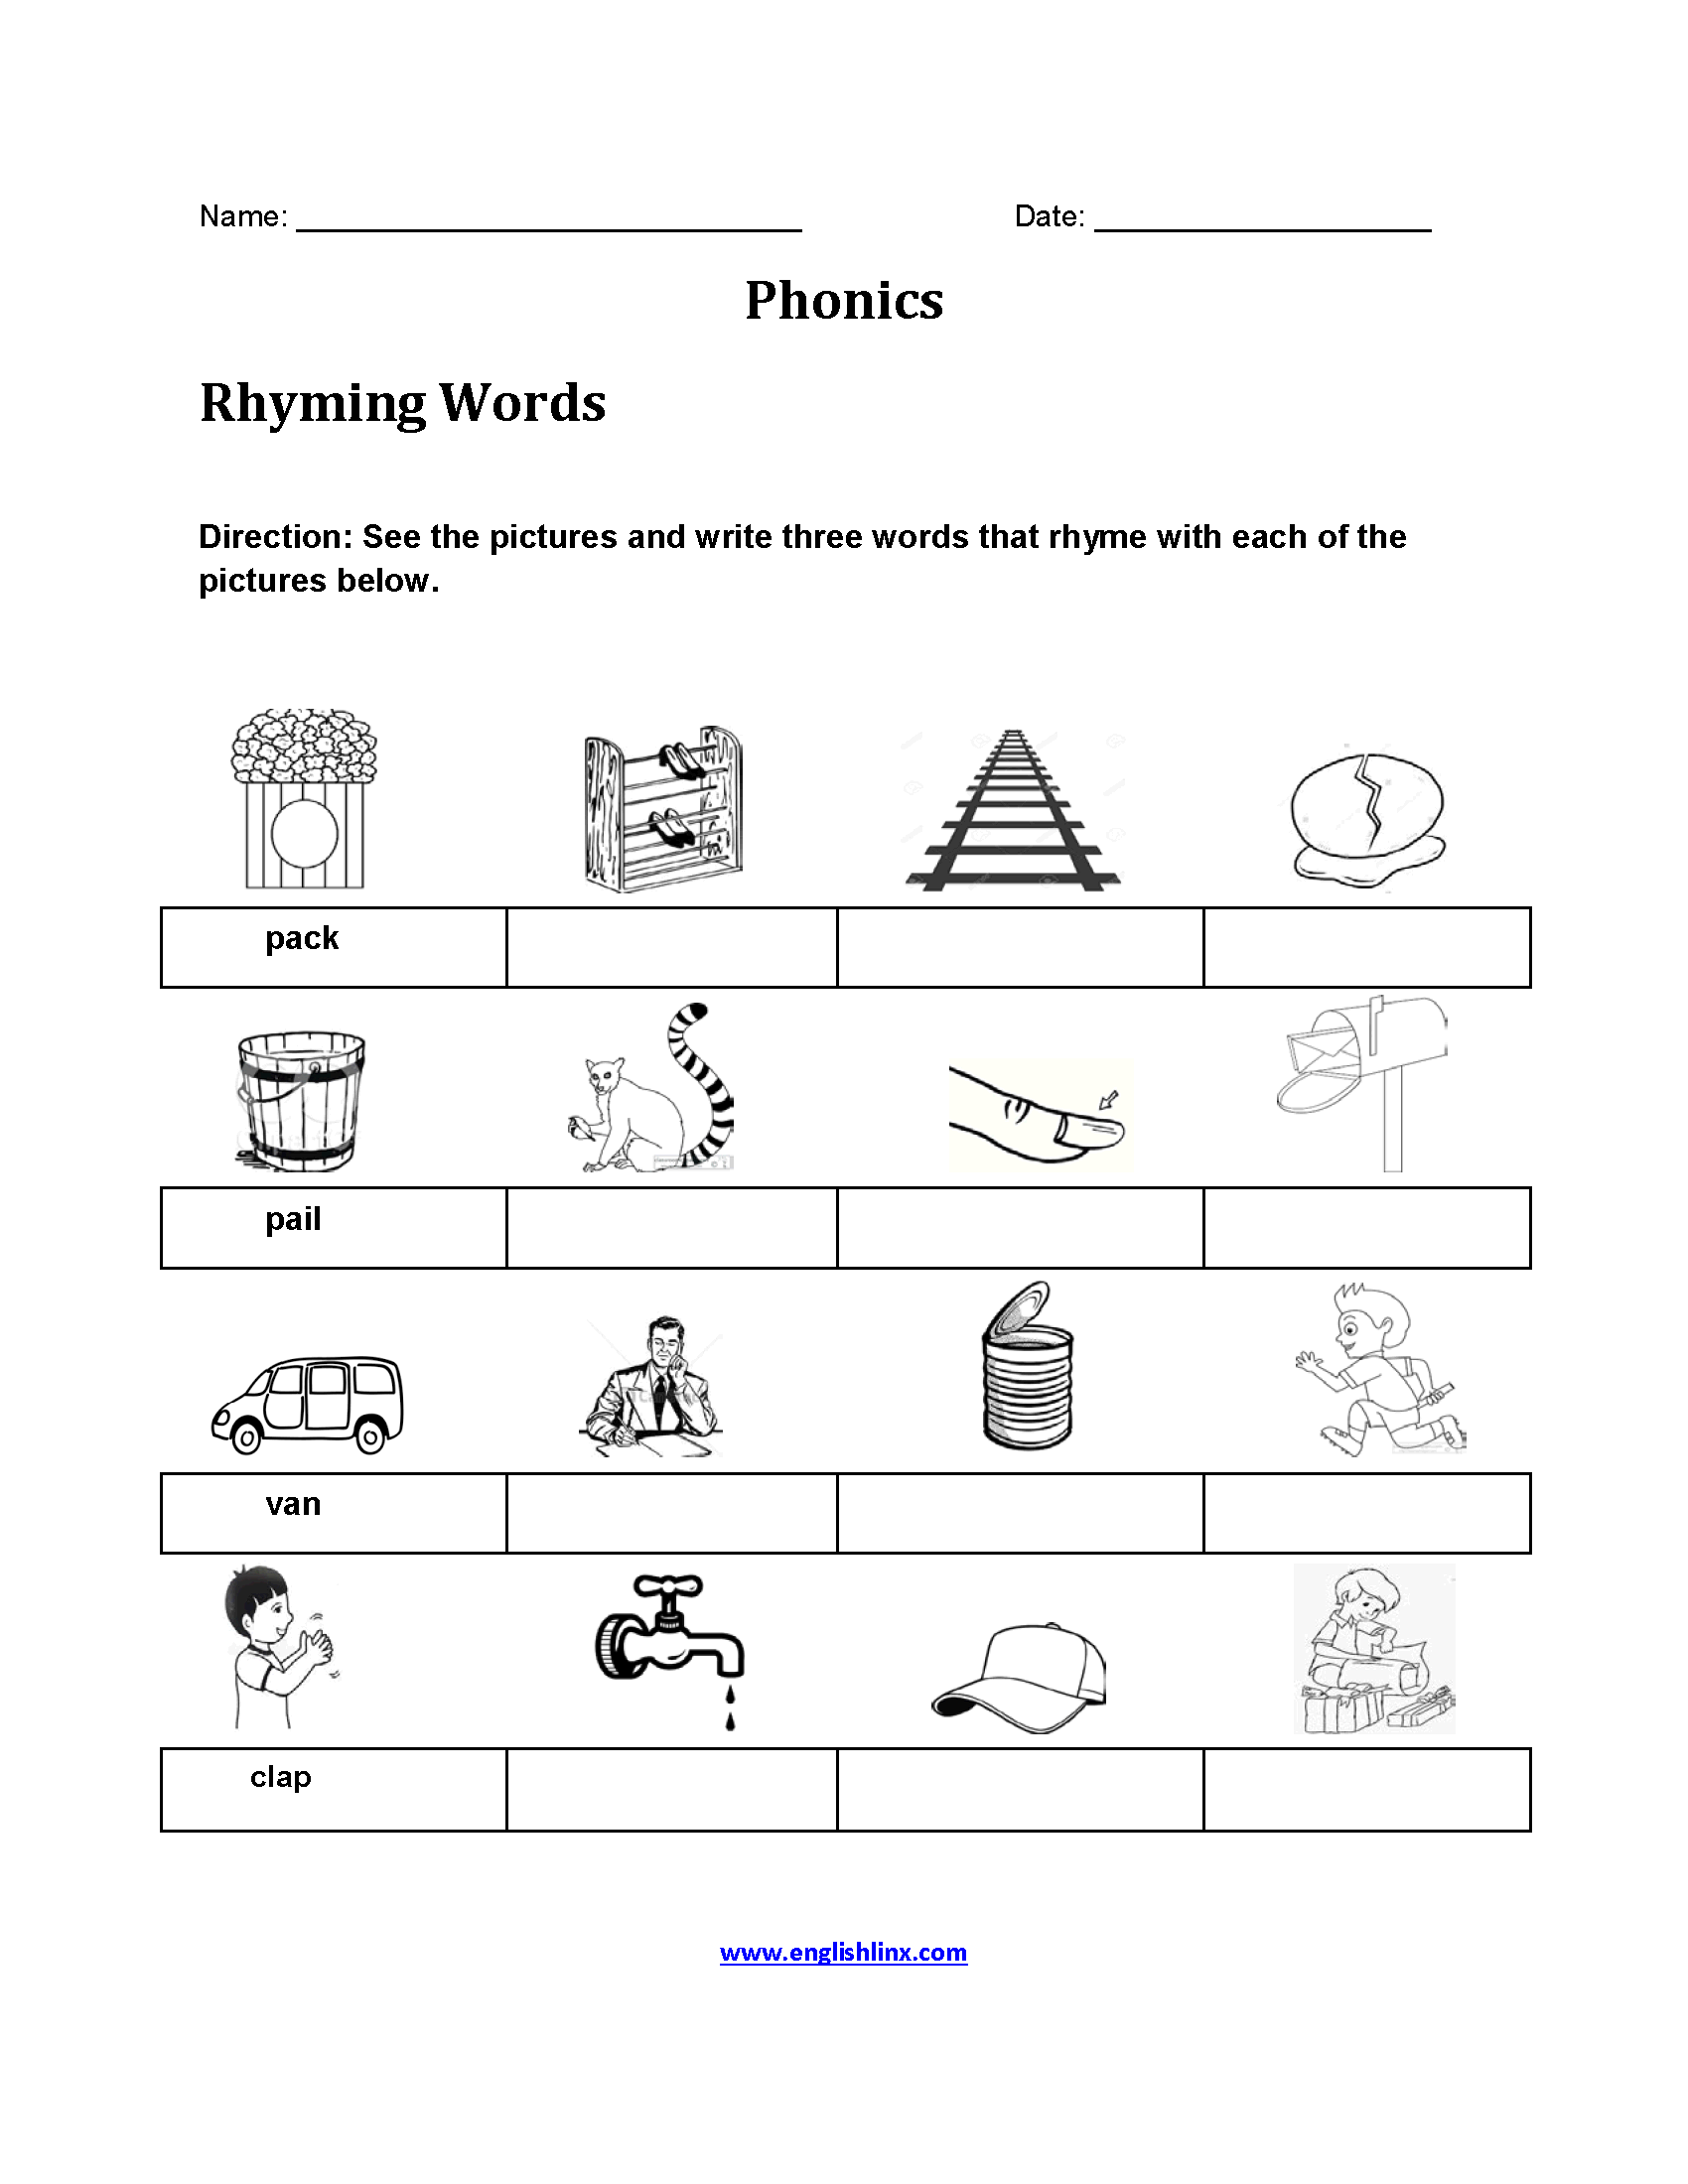 Teach Child How To Read Printable Phonics Sheets